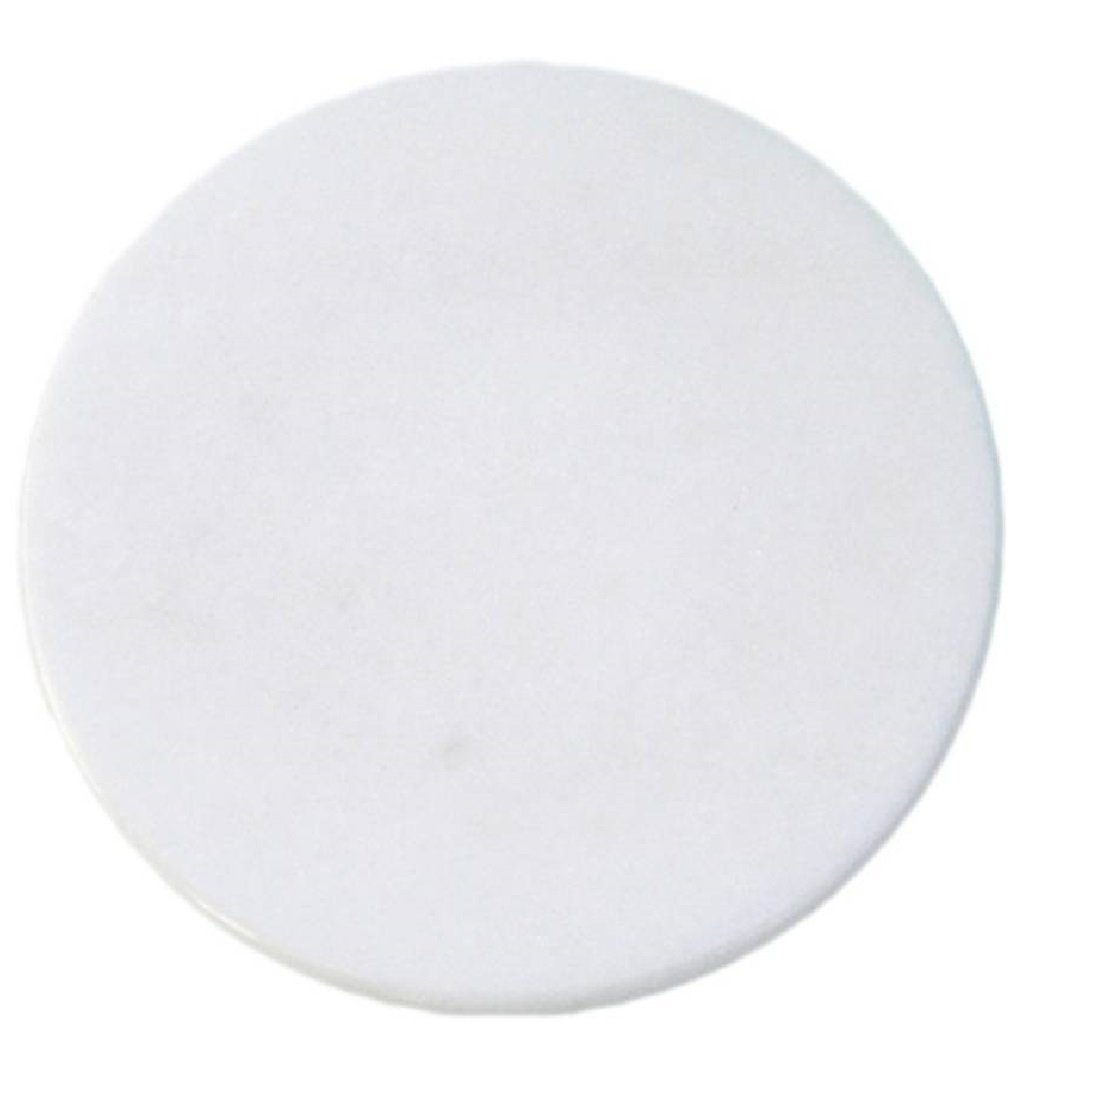 """Gr8 INDIA White Marble Chakla - 10"""" Diameter - Ring Base Rolling Pin Board, Roti Maker - From Banks of Holy River Narmada product image"""